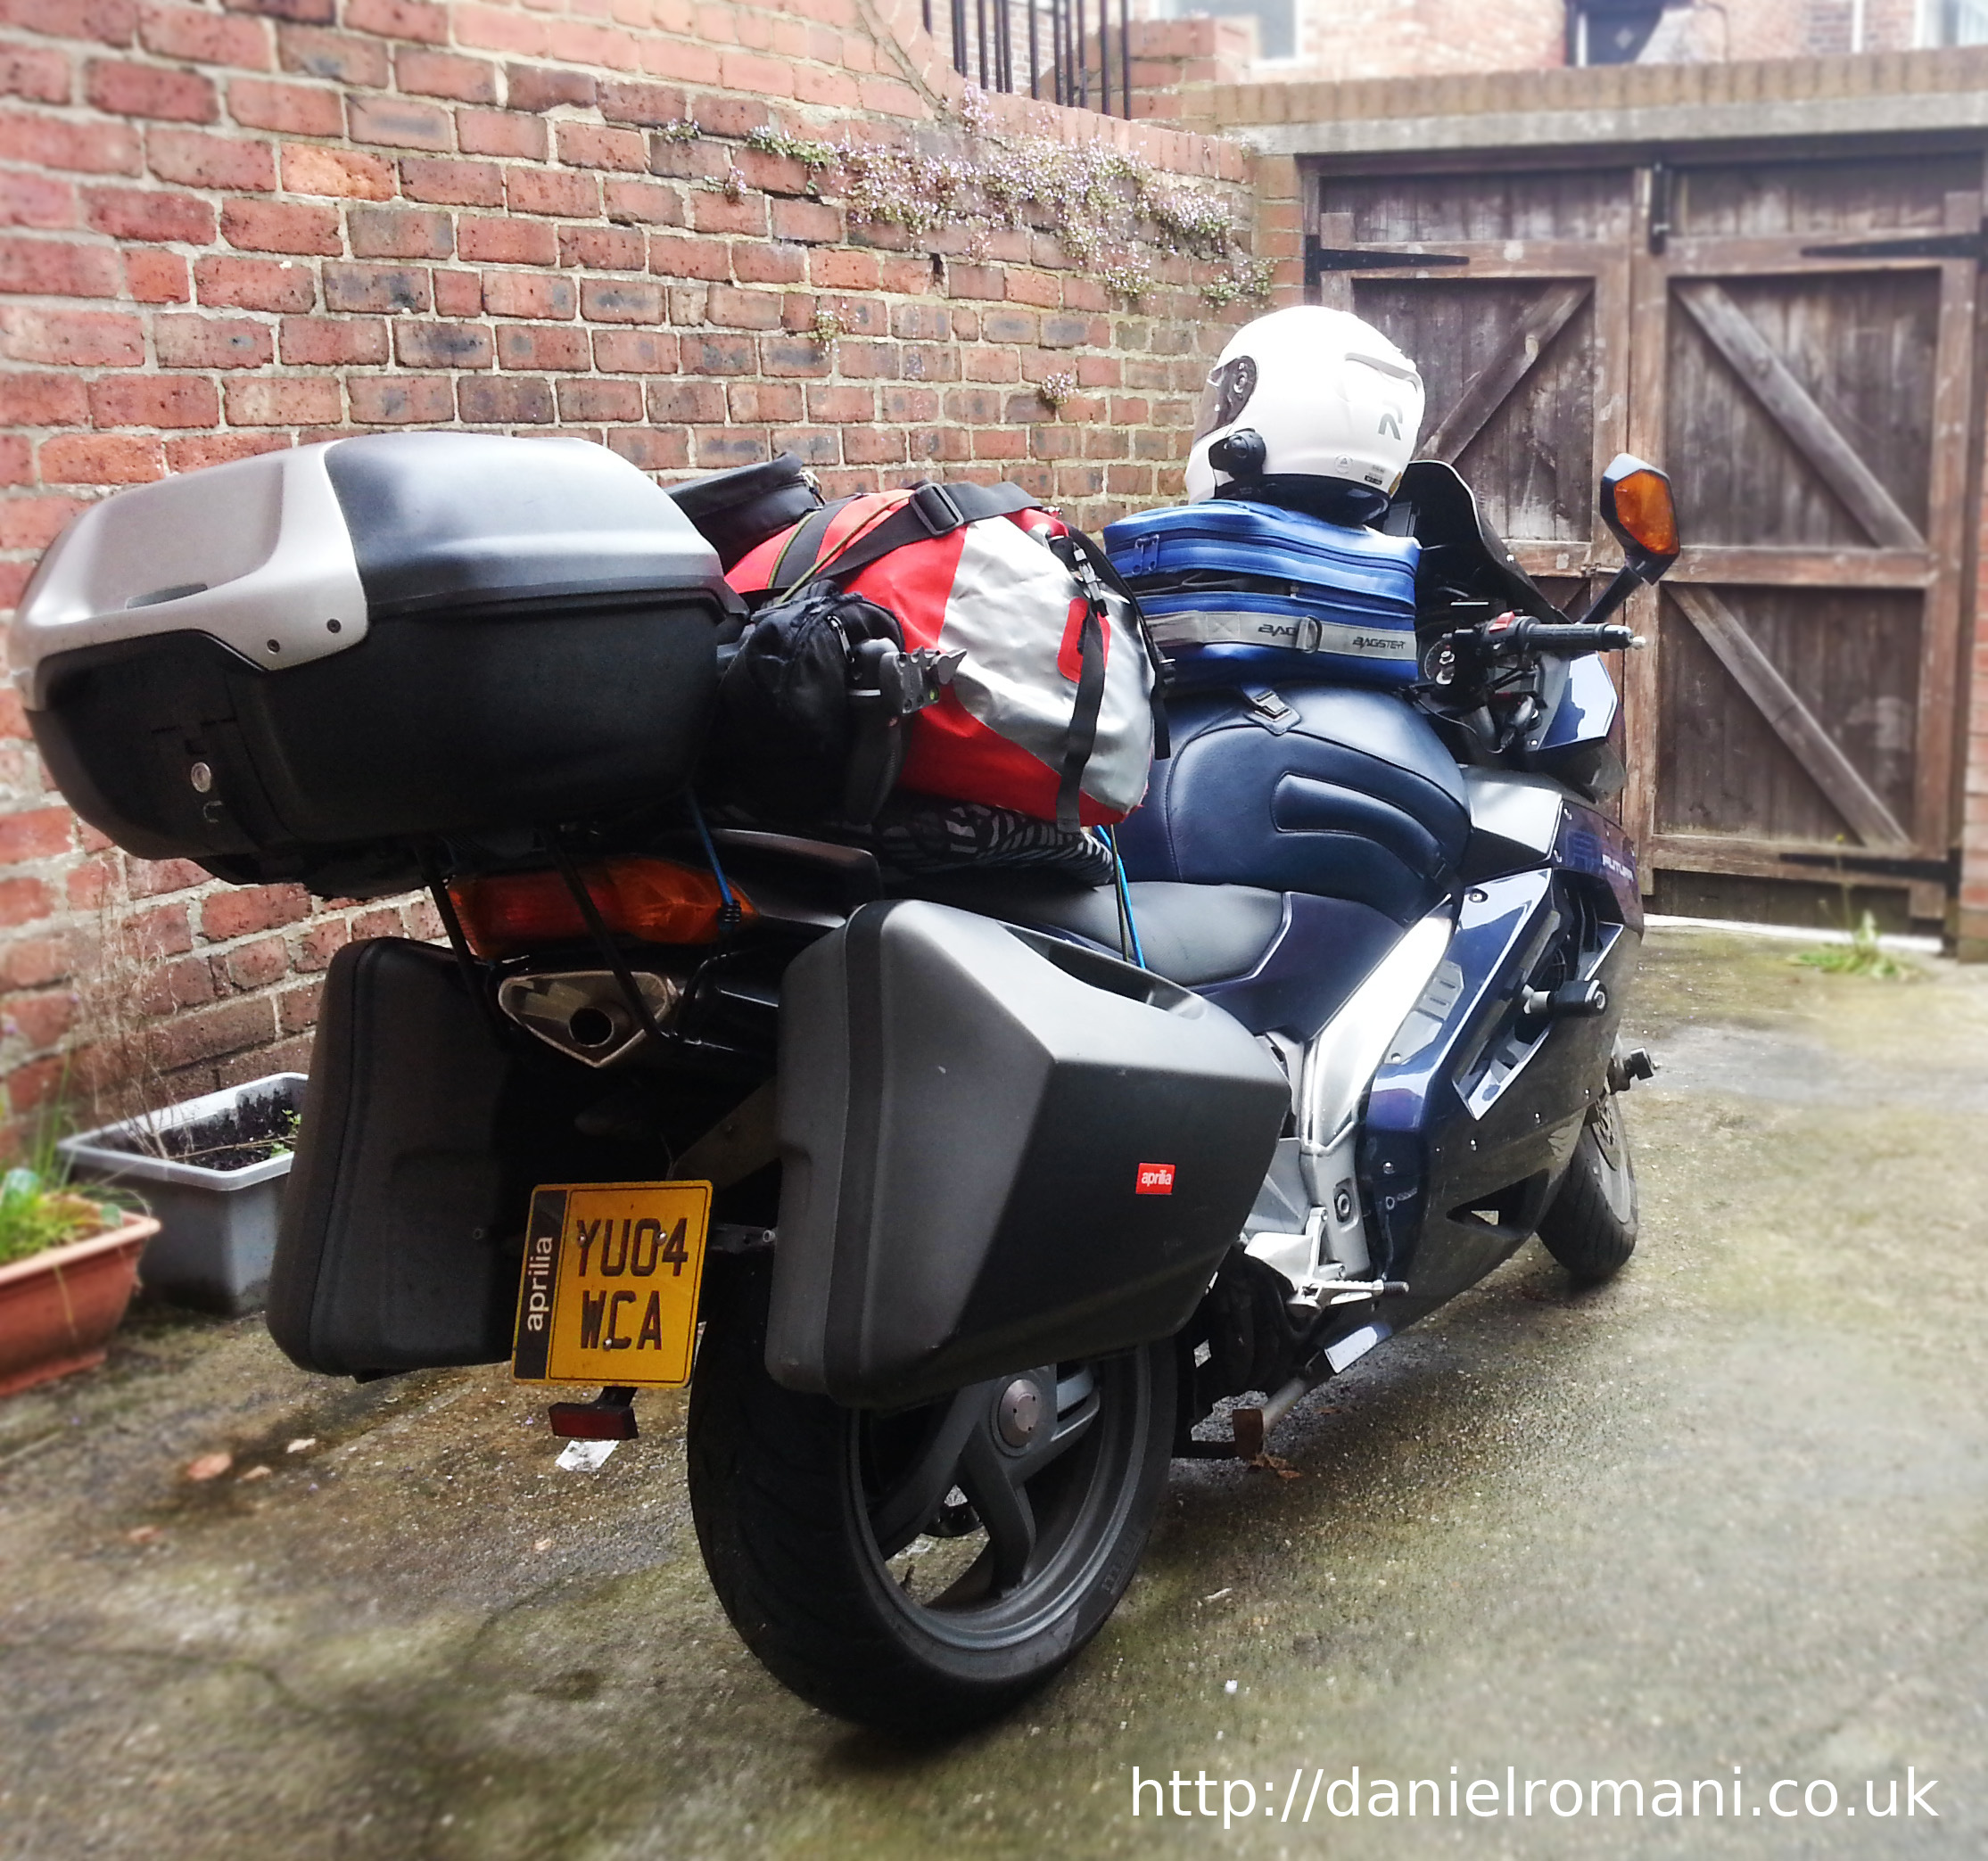 Ready for the UK road Trip - Aprilia Futura